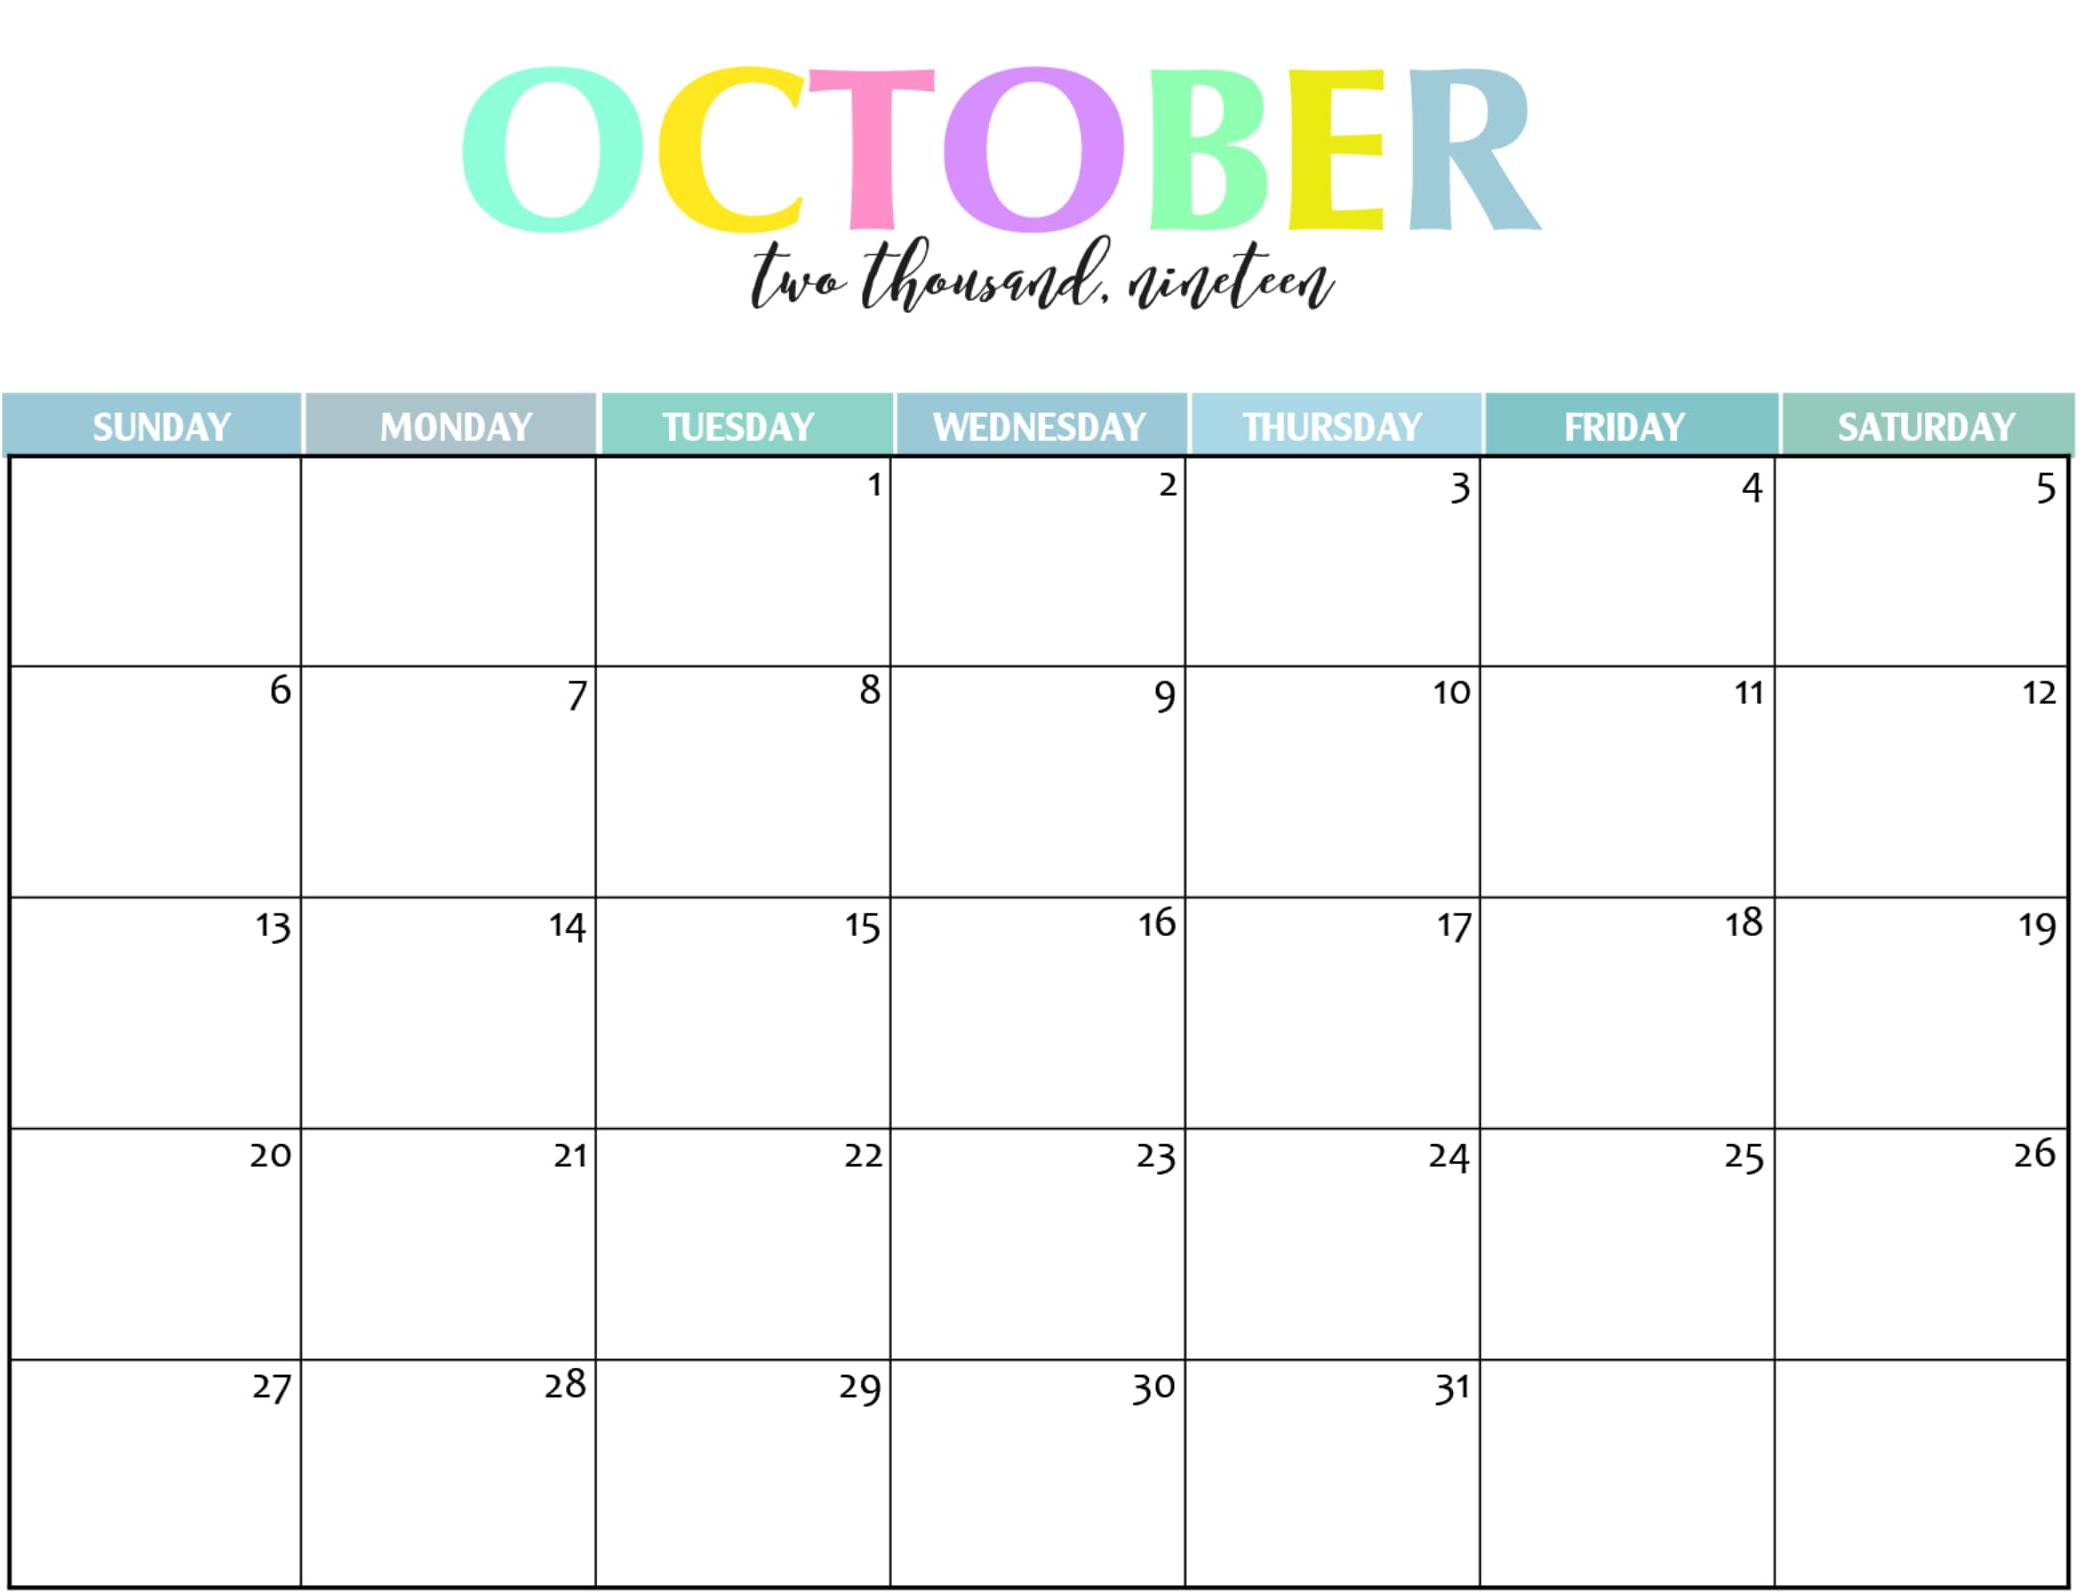 October Archives - Set Your Plan & Tasks With Best Ideas